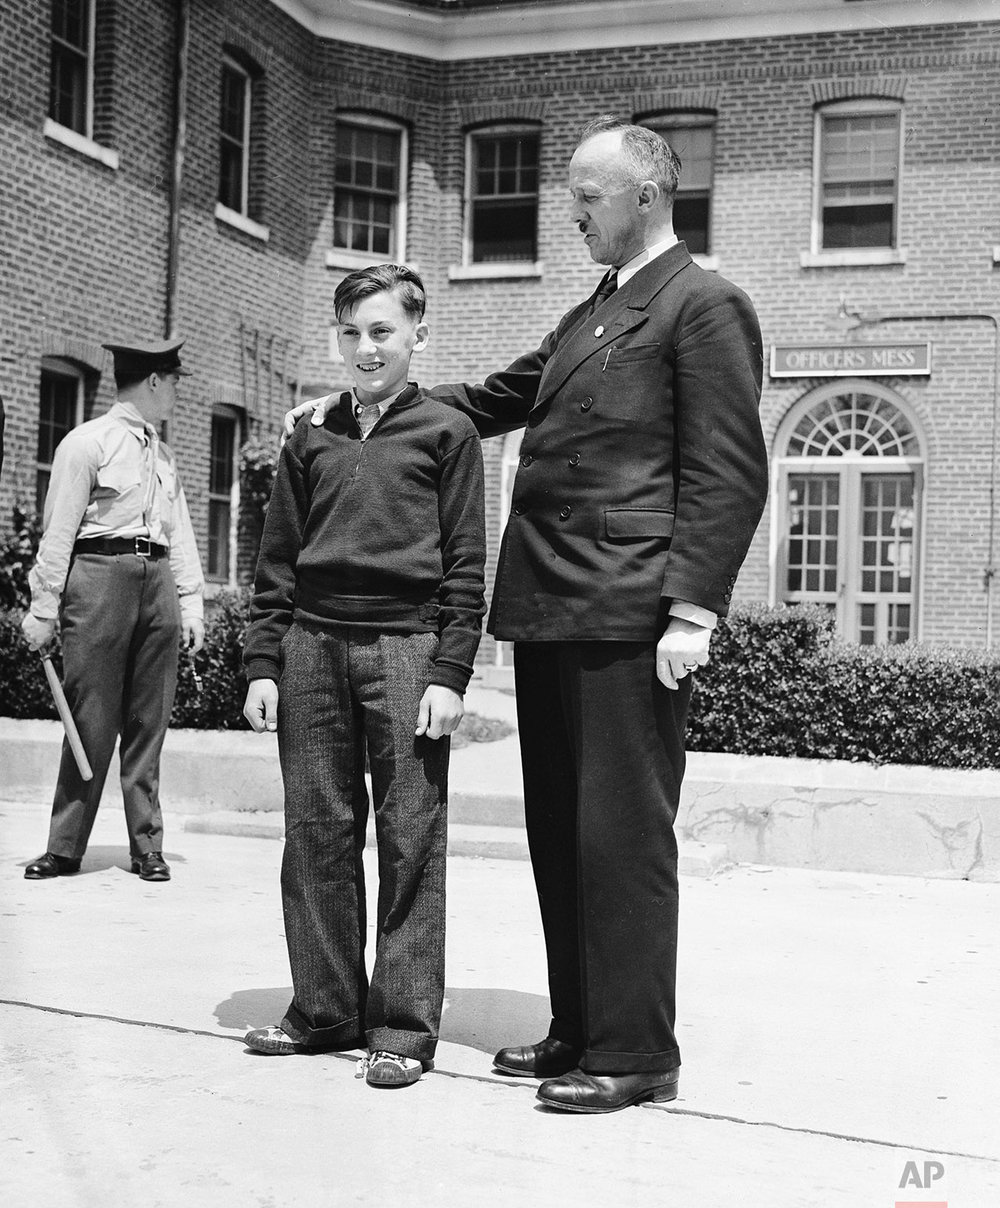 Two survivors of the Hindenburg disaster, 13-year-old Werner Franz, cabin boy, and Heinrich Kubis, a steward, are shown in Lakehurst, N.J., May 7, 1937. (AP Photo)